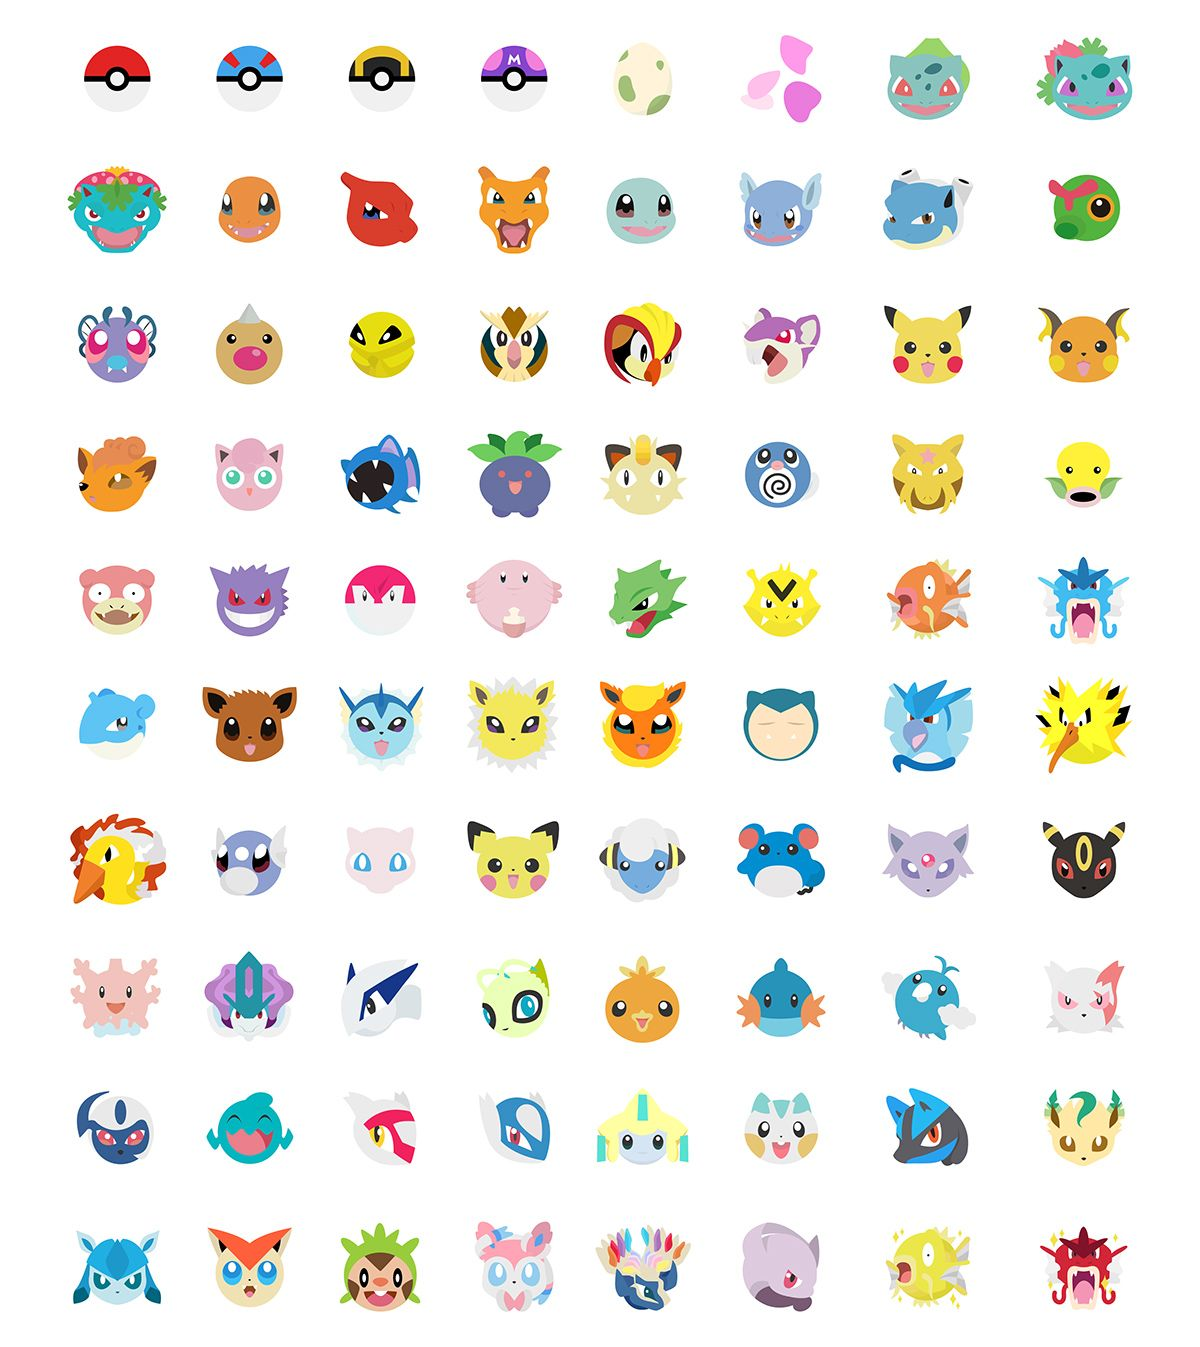 Pokemoji Keyboard On Behance ポケモン ネイル 滅